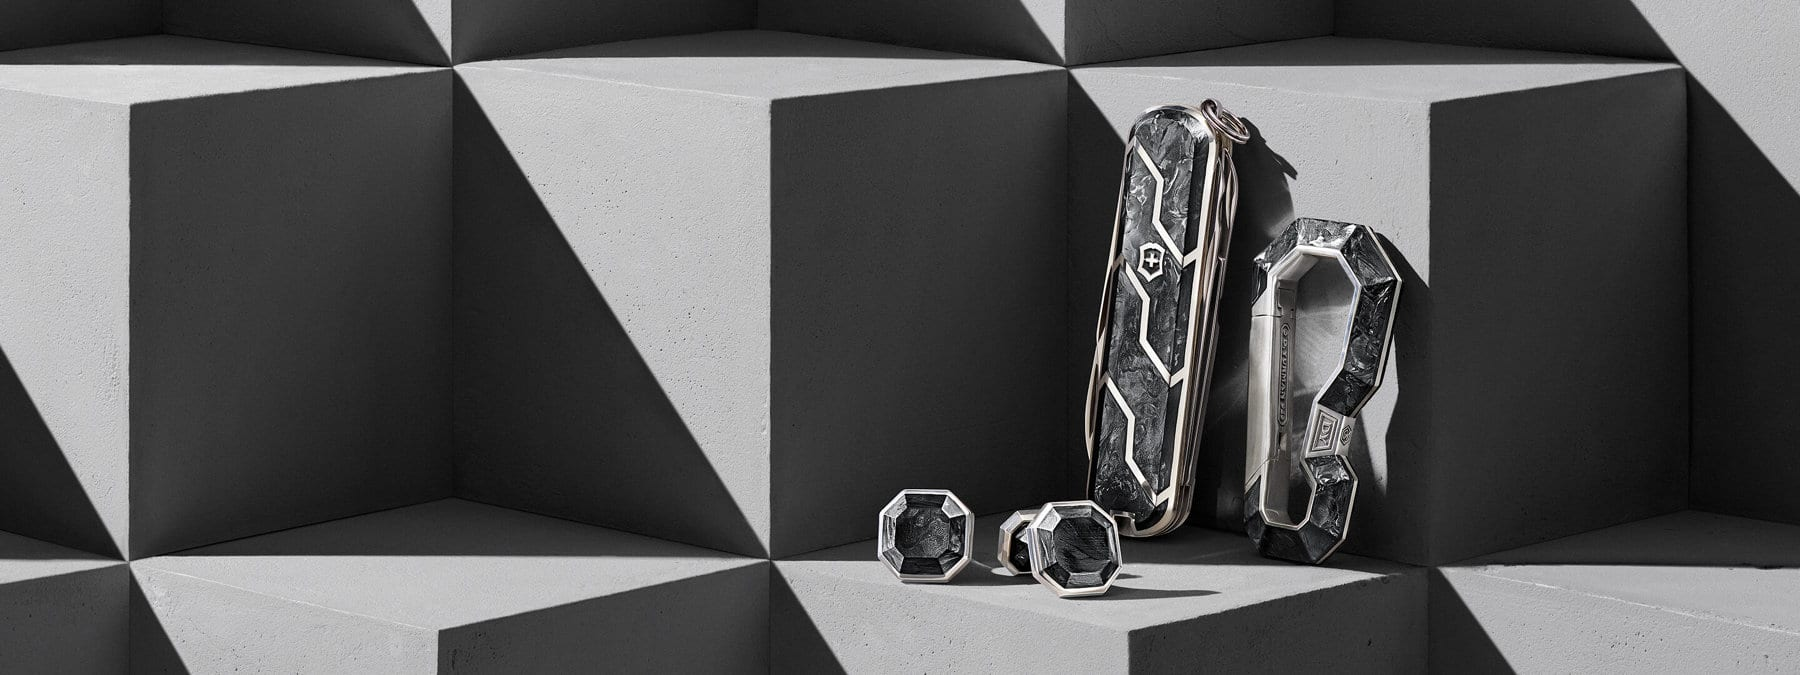 A color photograph shows three accessories from the Forged Carbon Collection atop gray concrete blocks with graphic shadows. From left to right are a pair of cufflinks, a Swiss army knife and a carabineer keychain. Each is crafted from sterling silver and forged carbon.